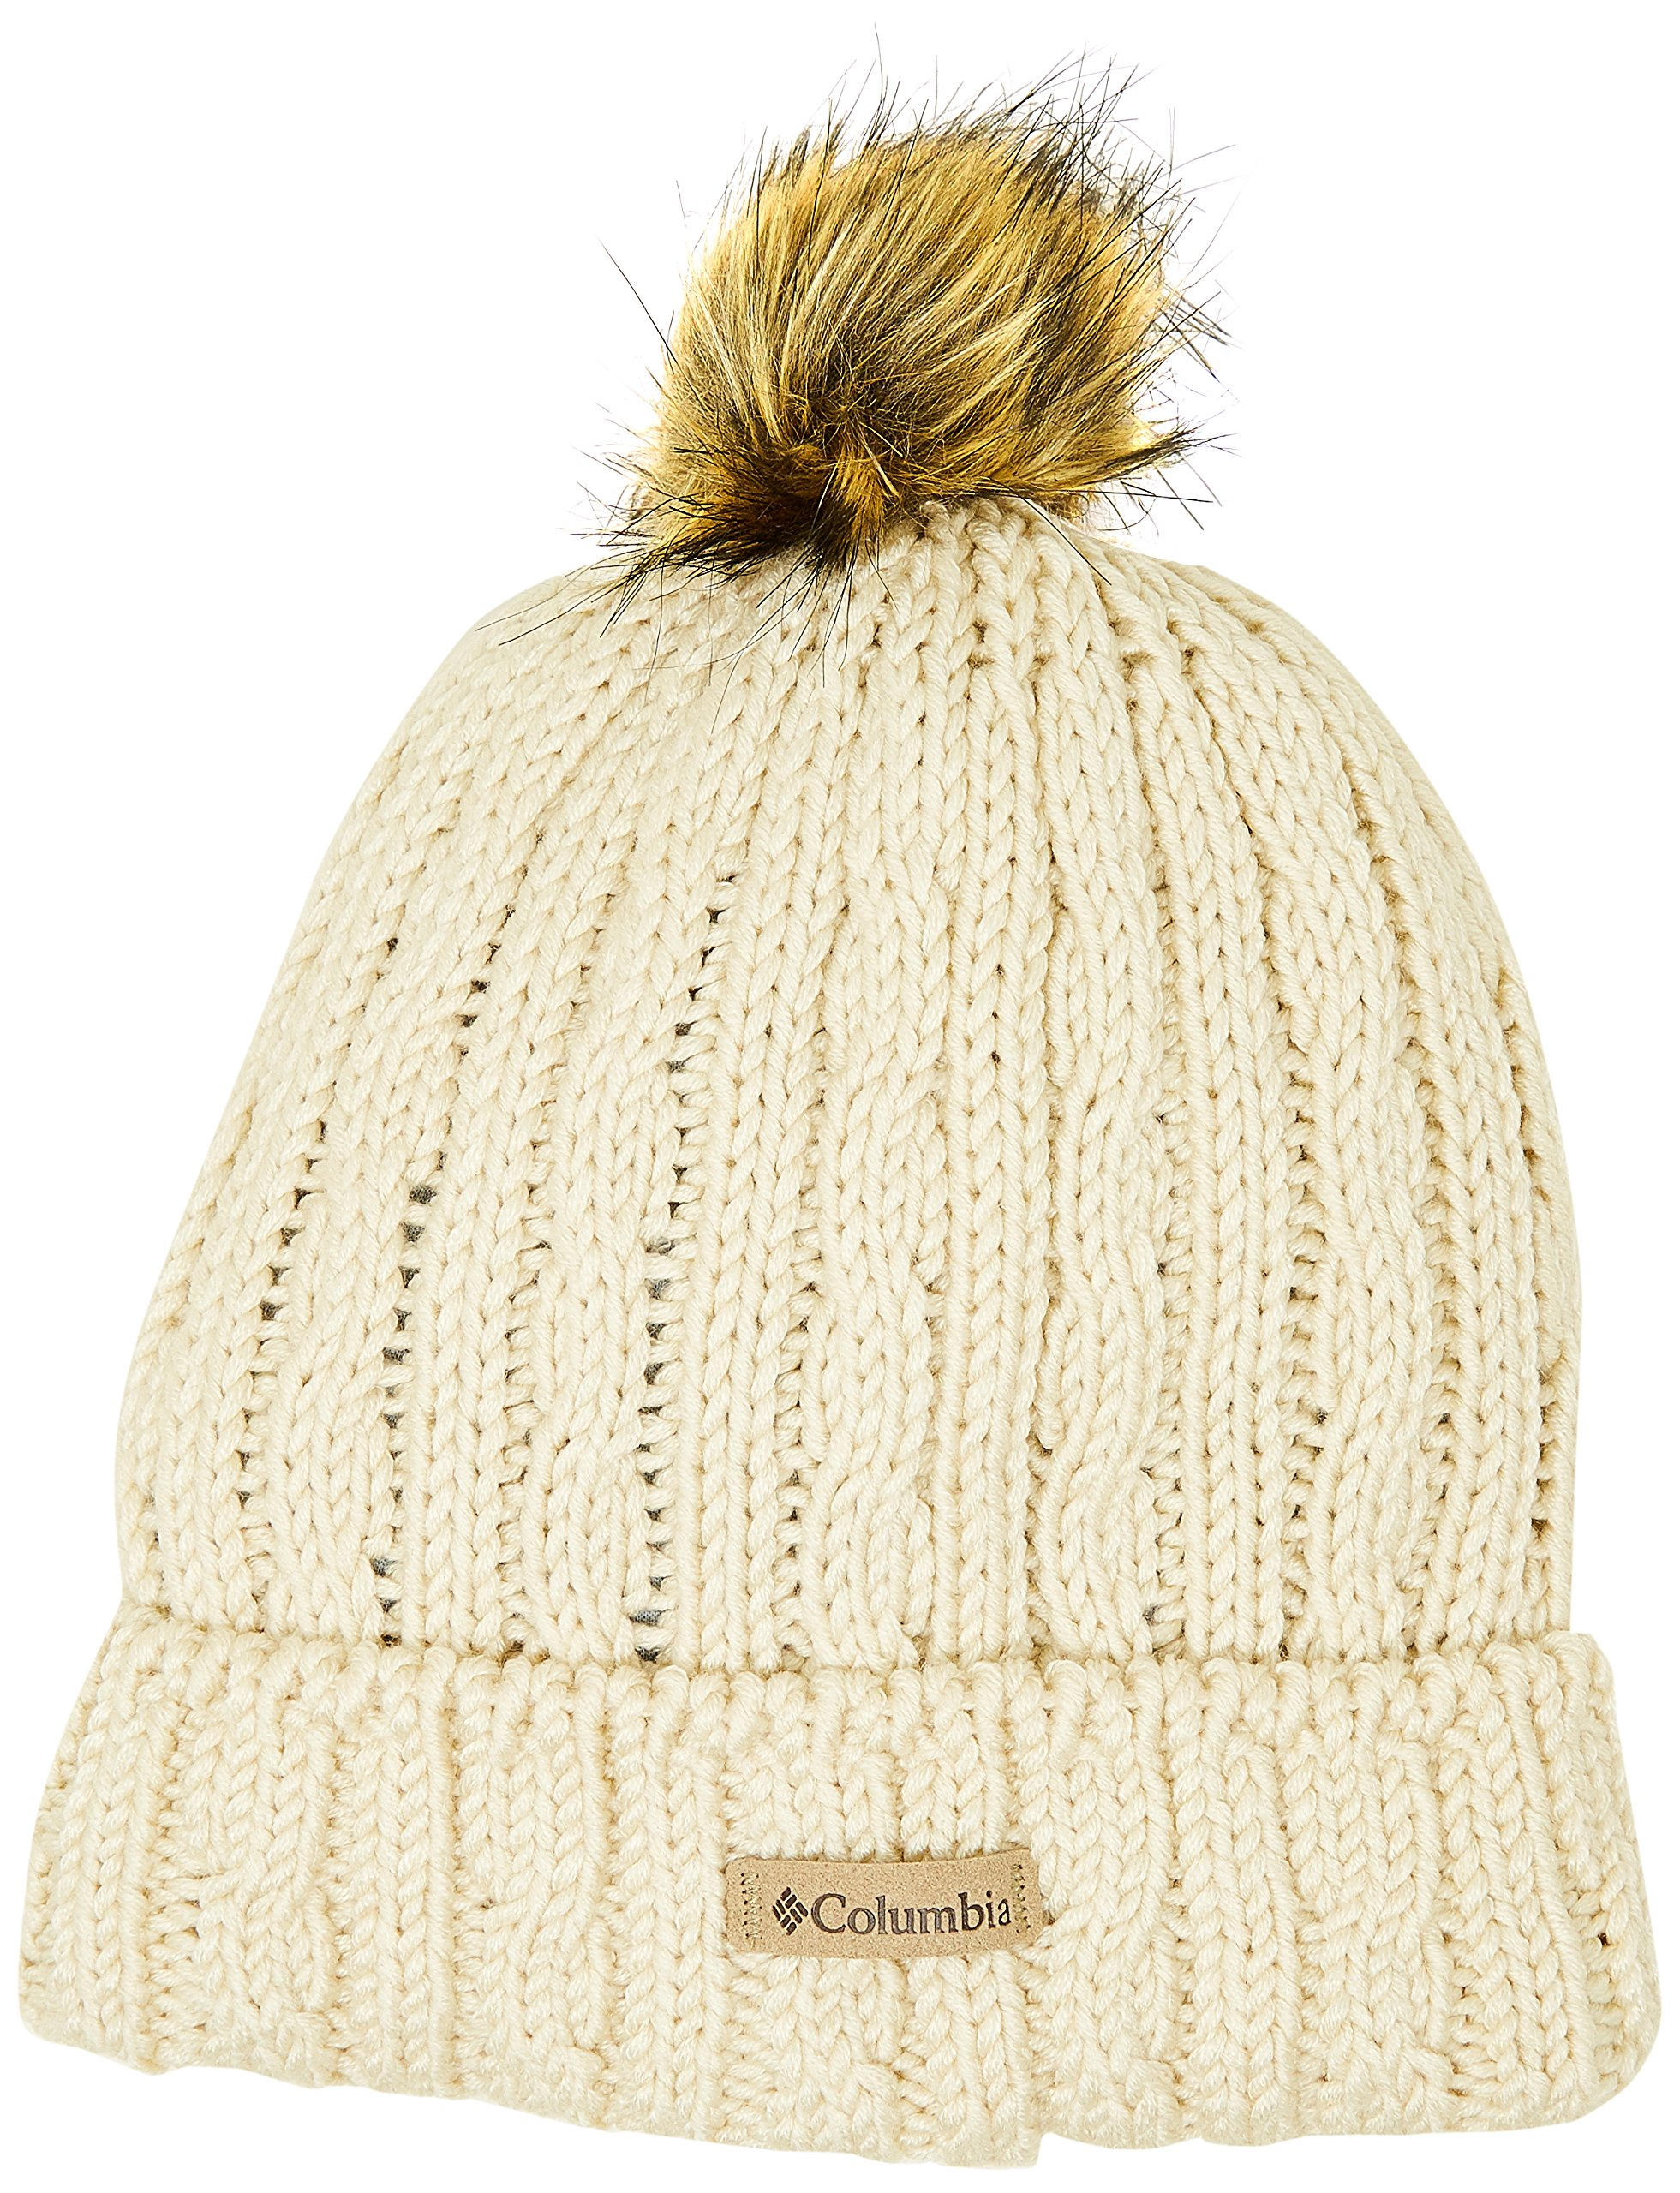 Columbia Catacomb Crest Beanie, Chalk, One Size by Columbia